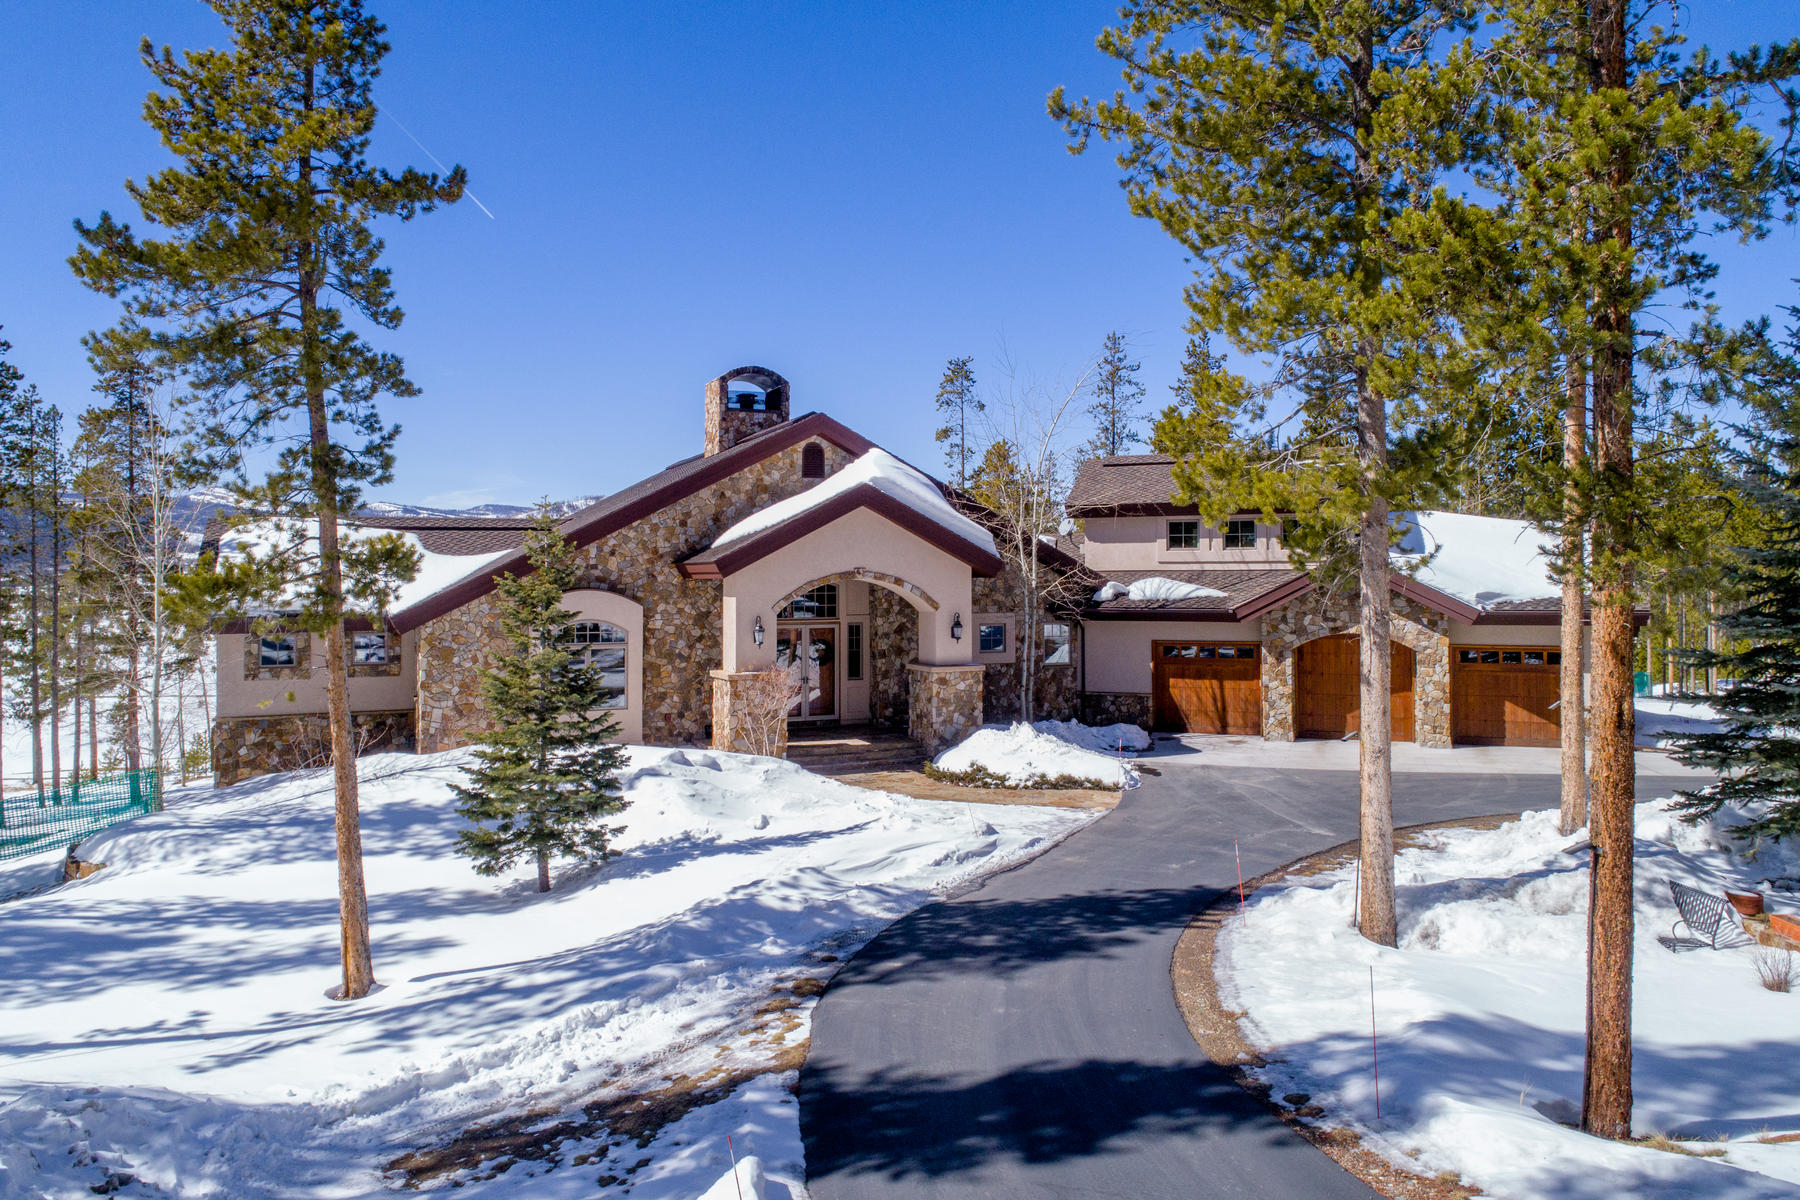 Single Family Home for Active at Luxurious custom home on 2 acres backing to the 5th hole tee on the Ridge course 35 County Road 5117/Lolly Ln Tabernash, Colorado 80478 United States